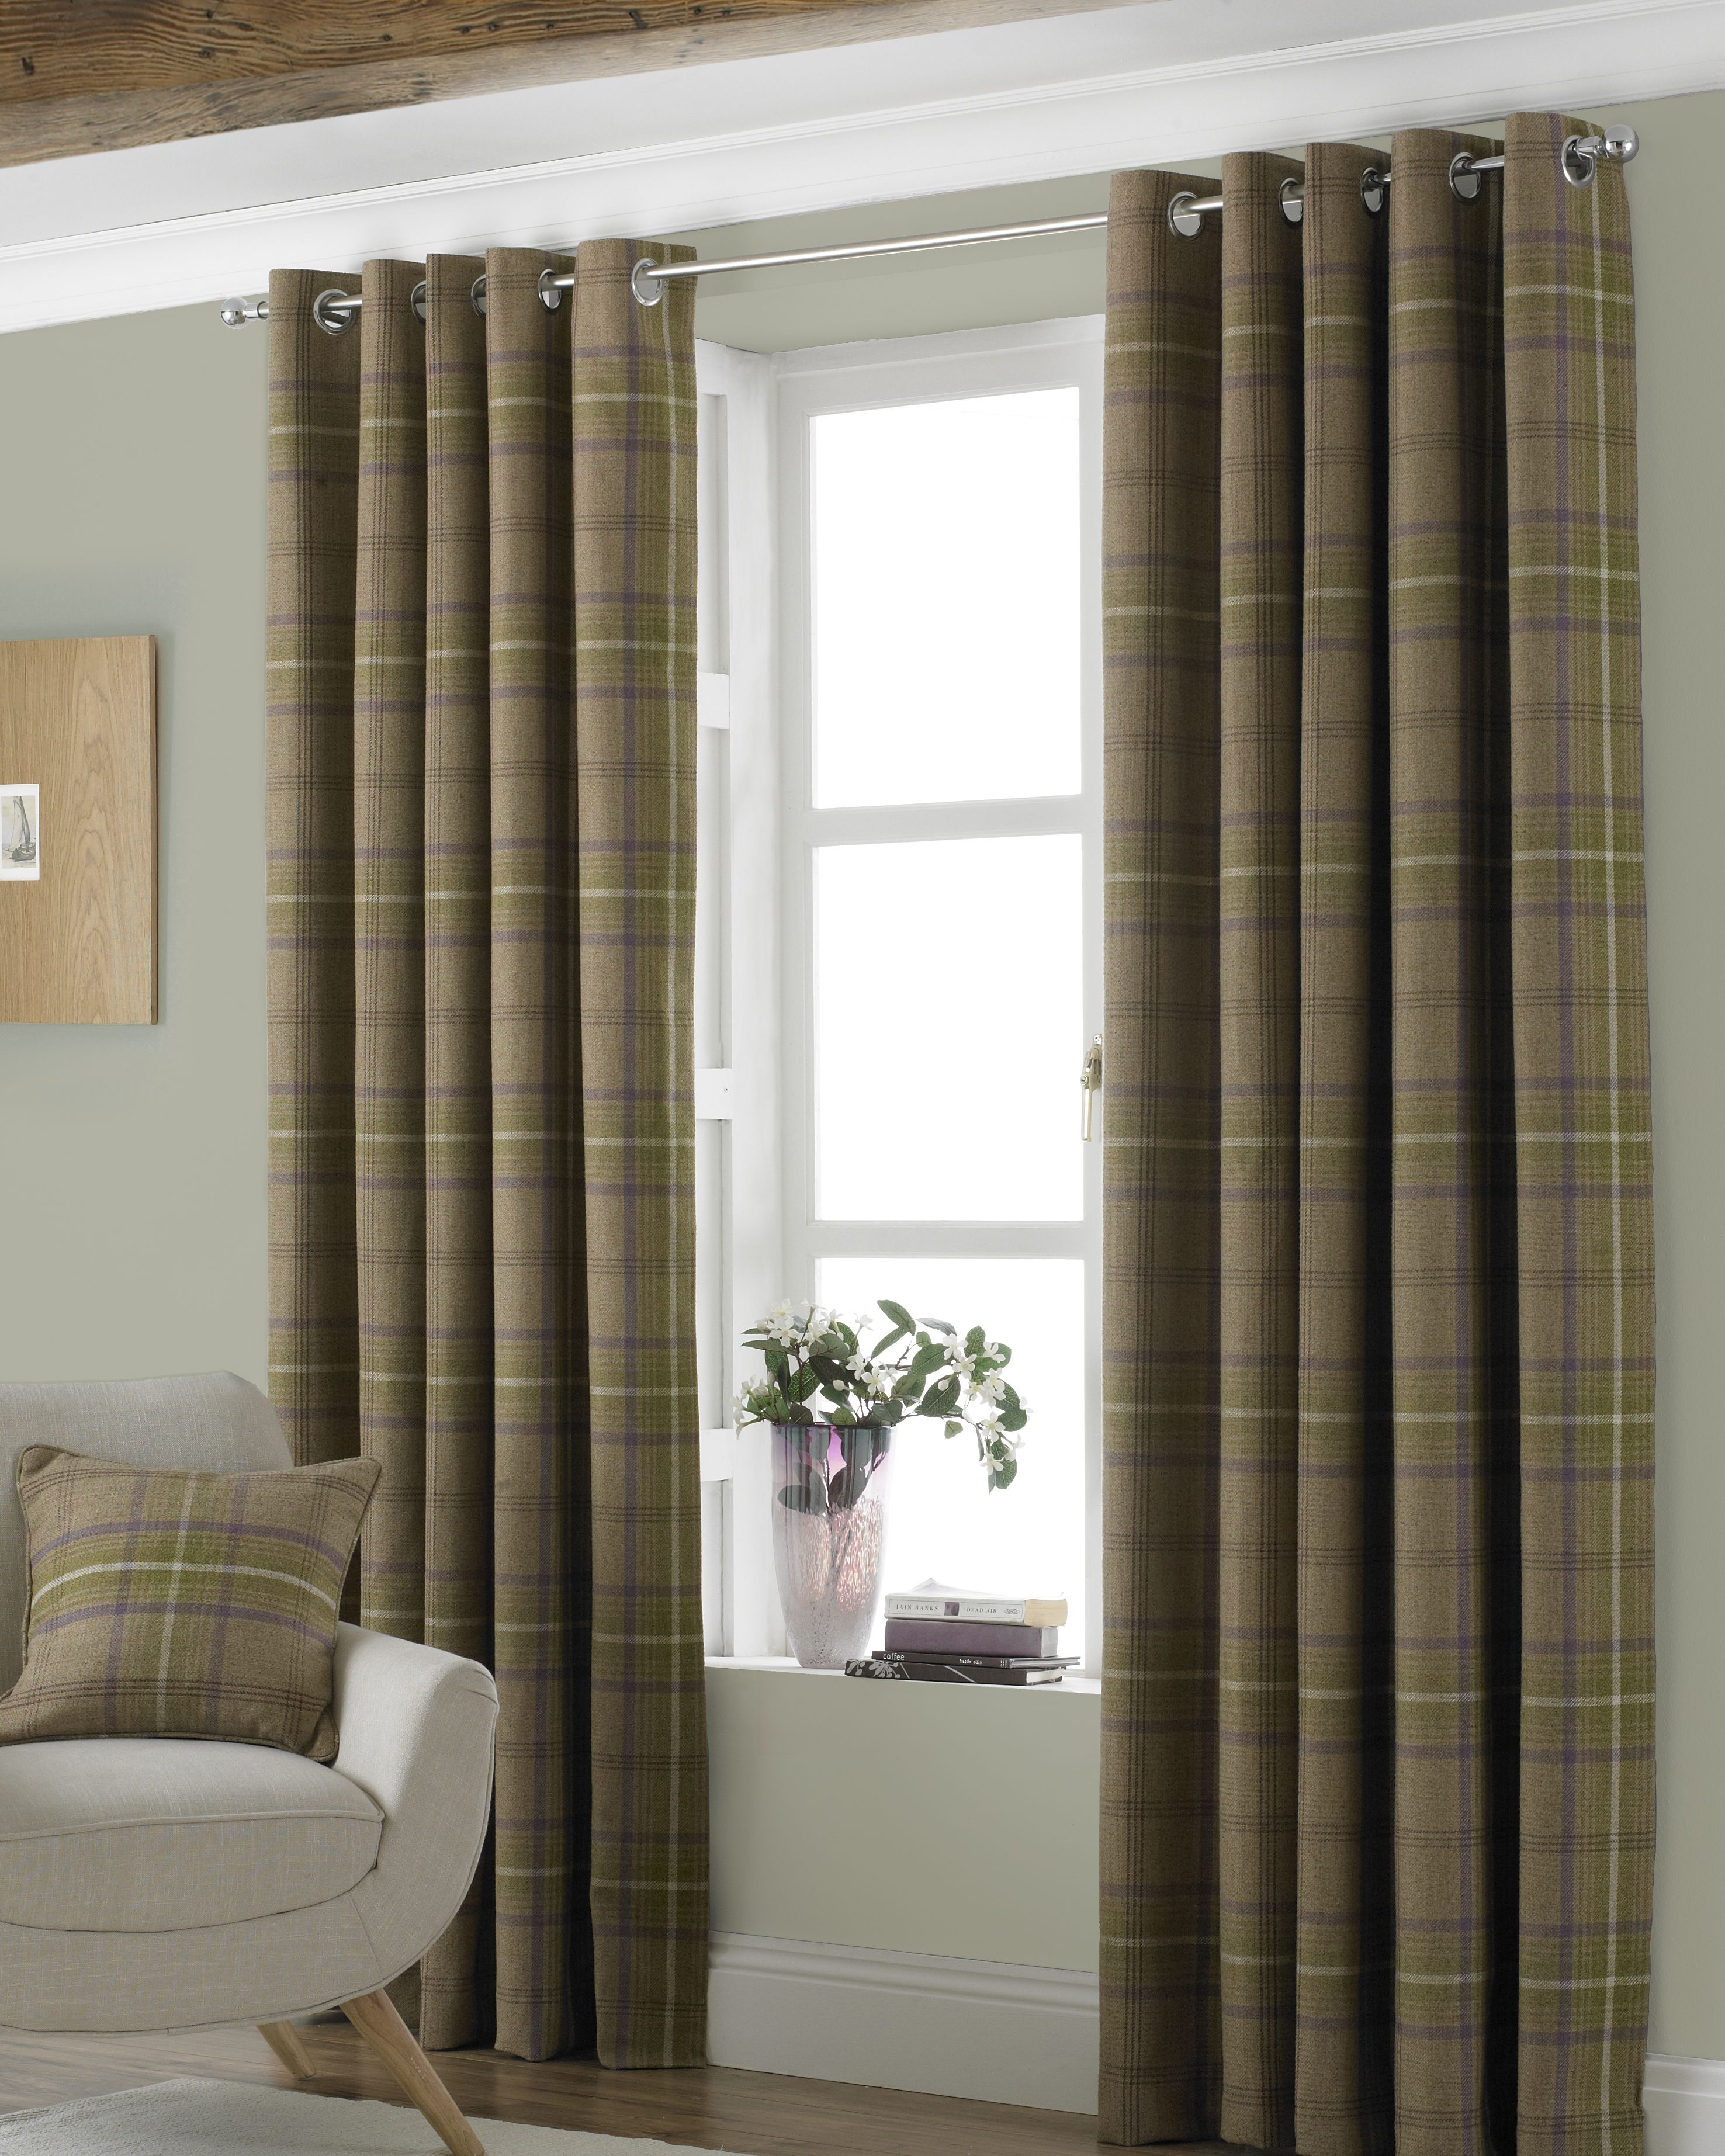 Aviemore Wool Effect Eyelet Curtains in Thistle